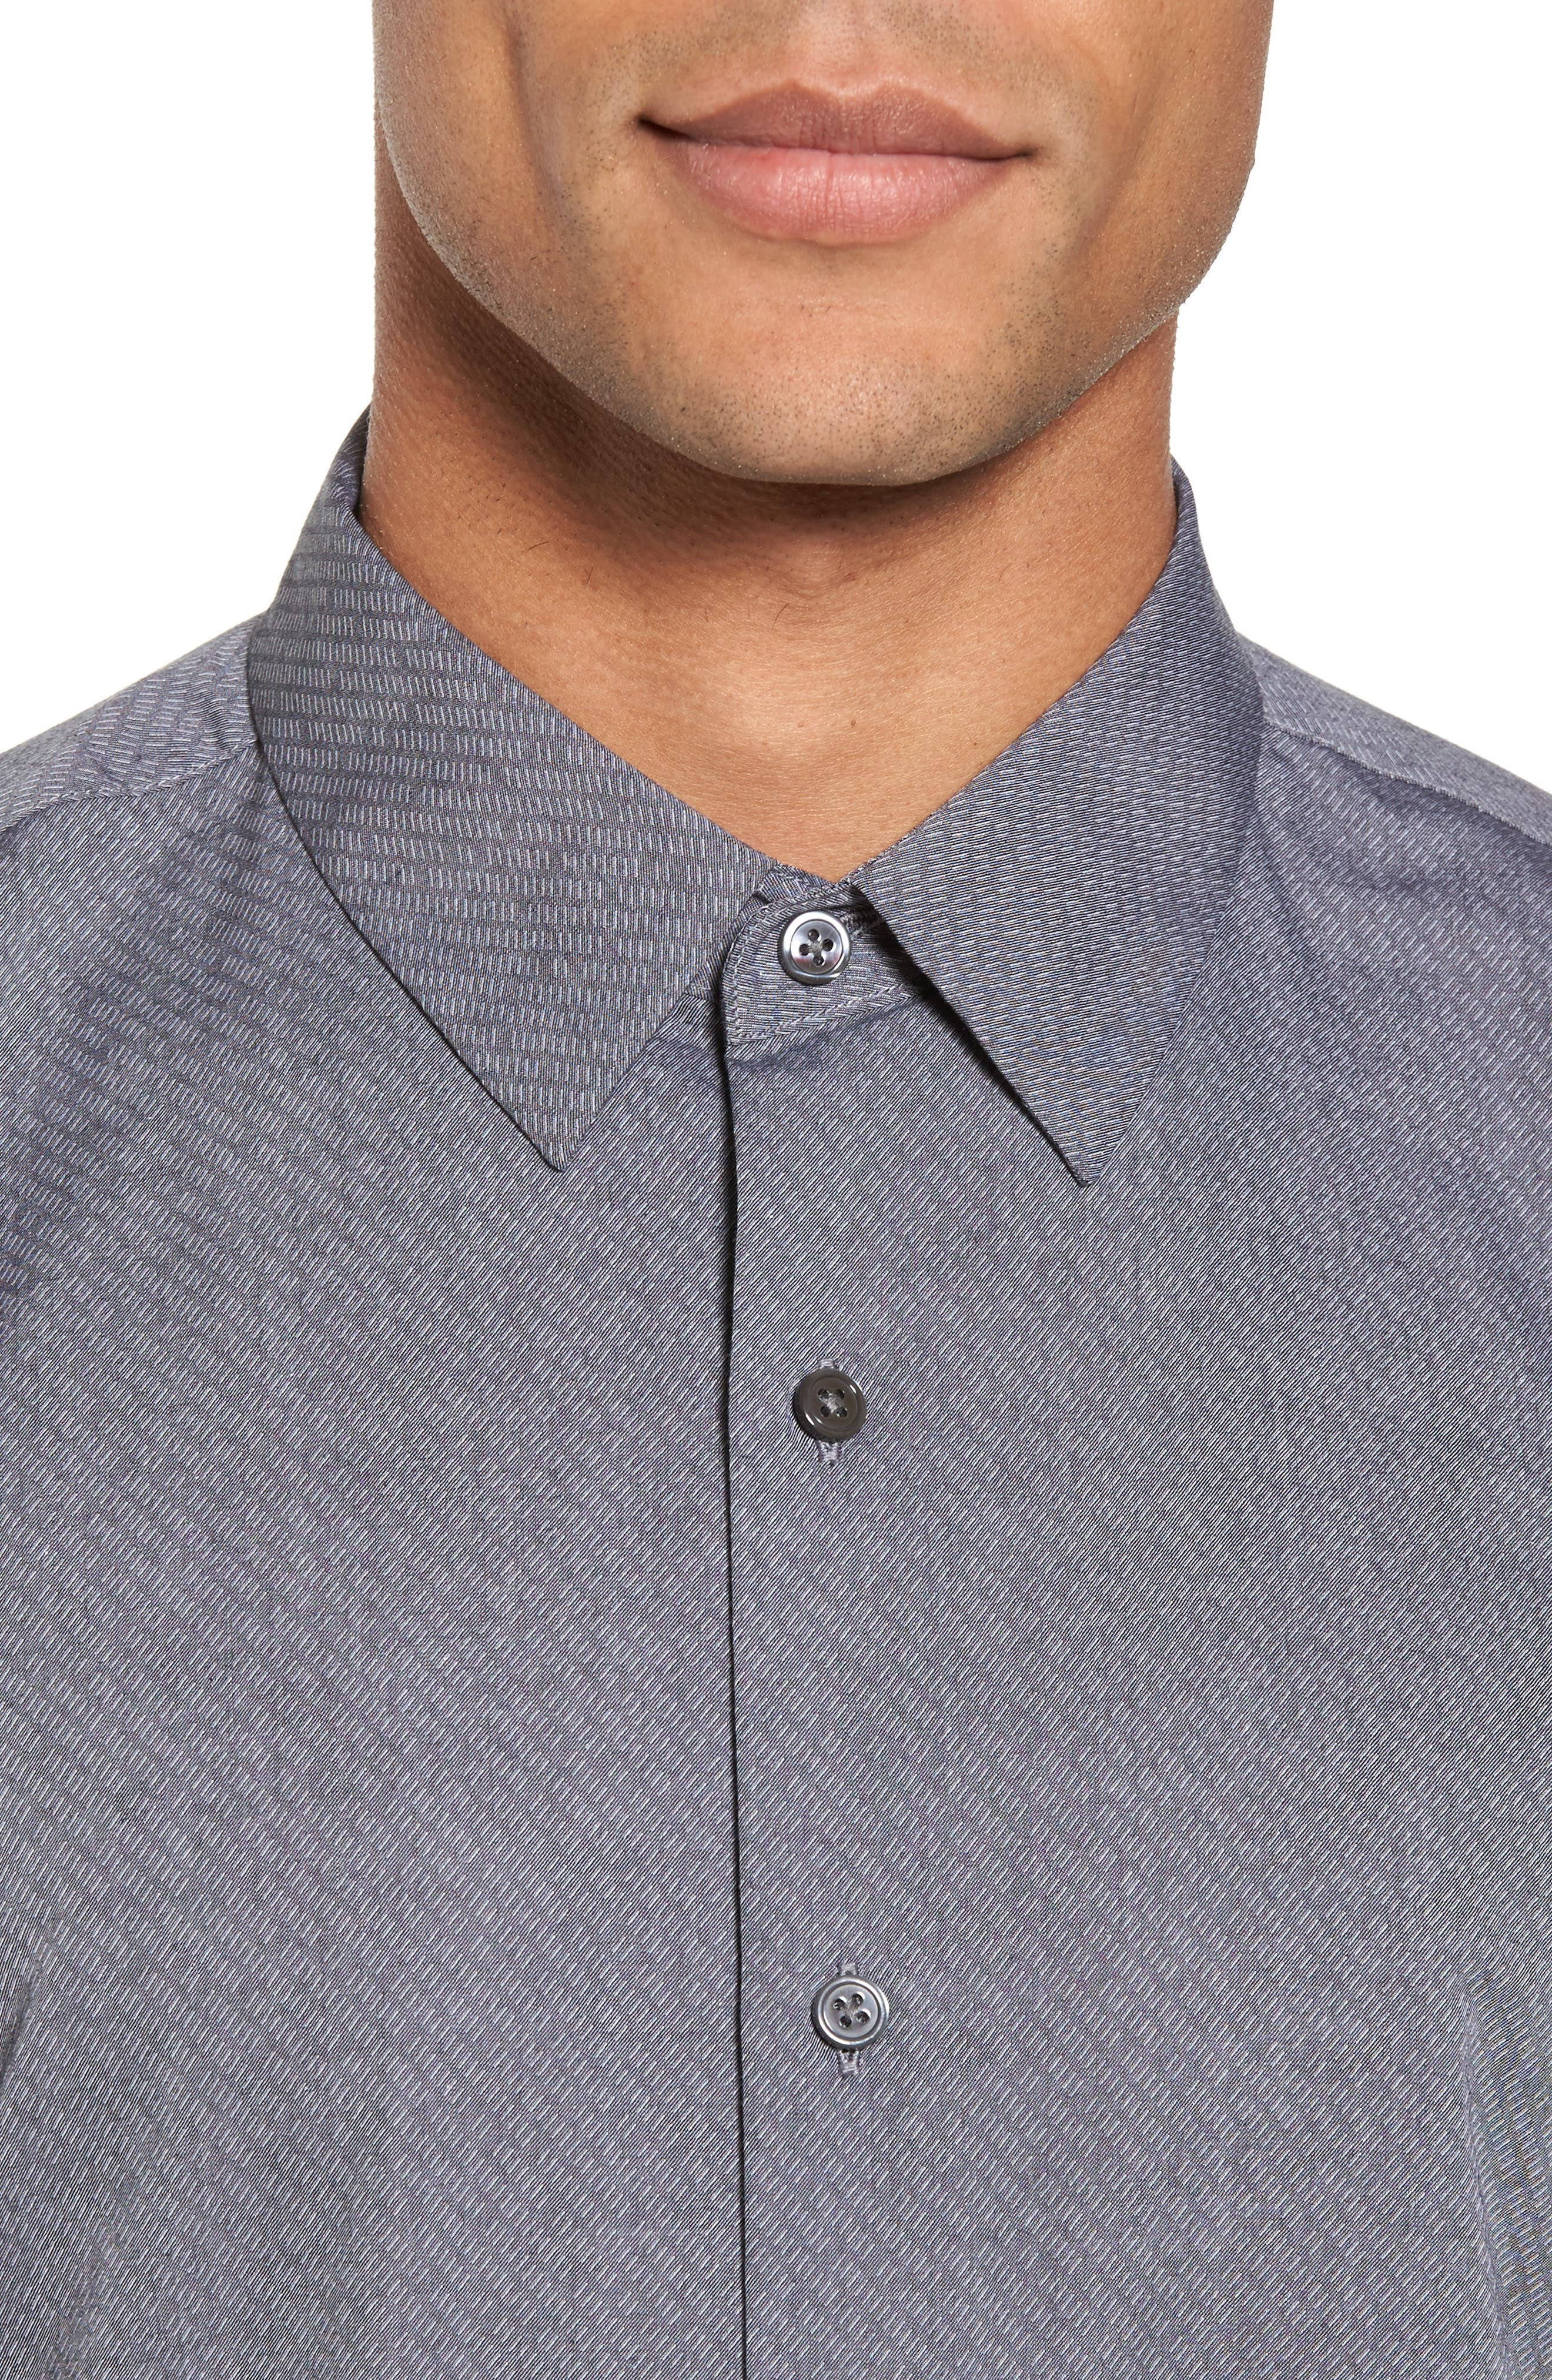 Alternate Image 4  - Theory Storm Trim Fit Solid Sport Shirt